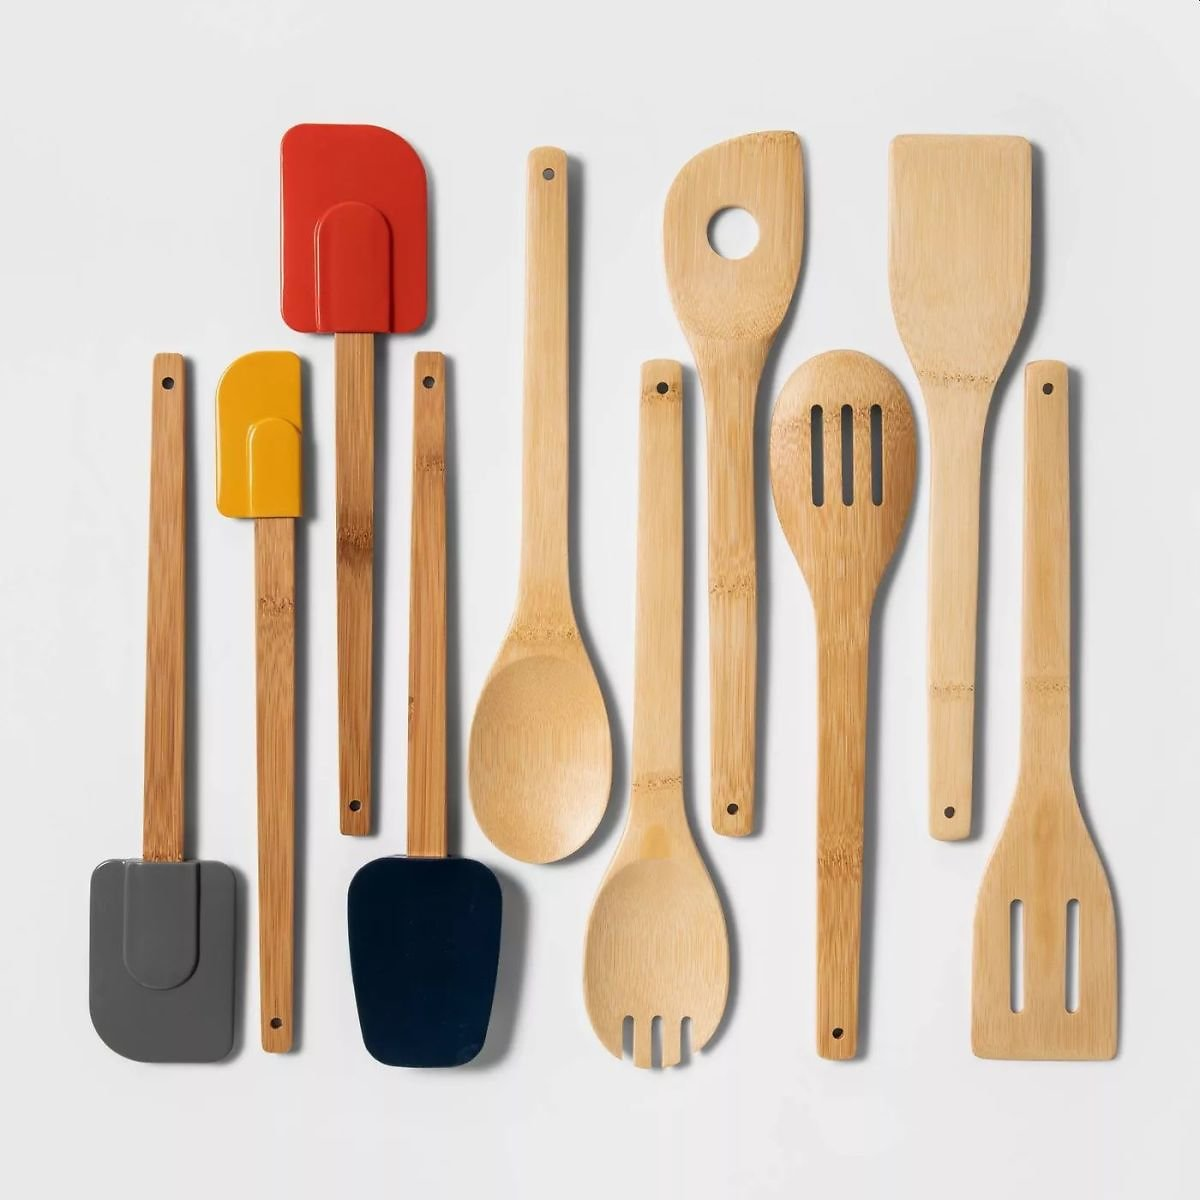 10pc Wood and Silicone Tool Set - Room Essentials™